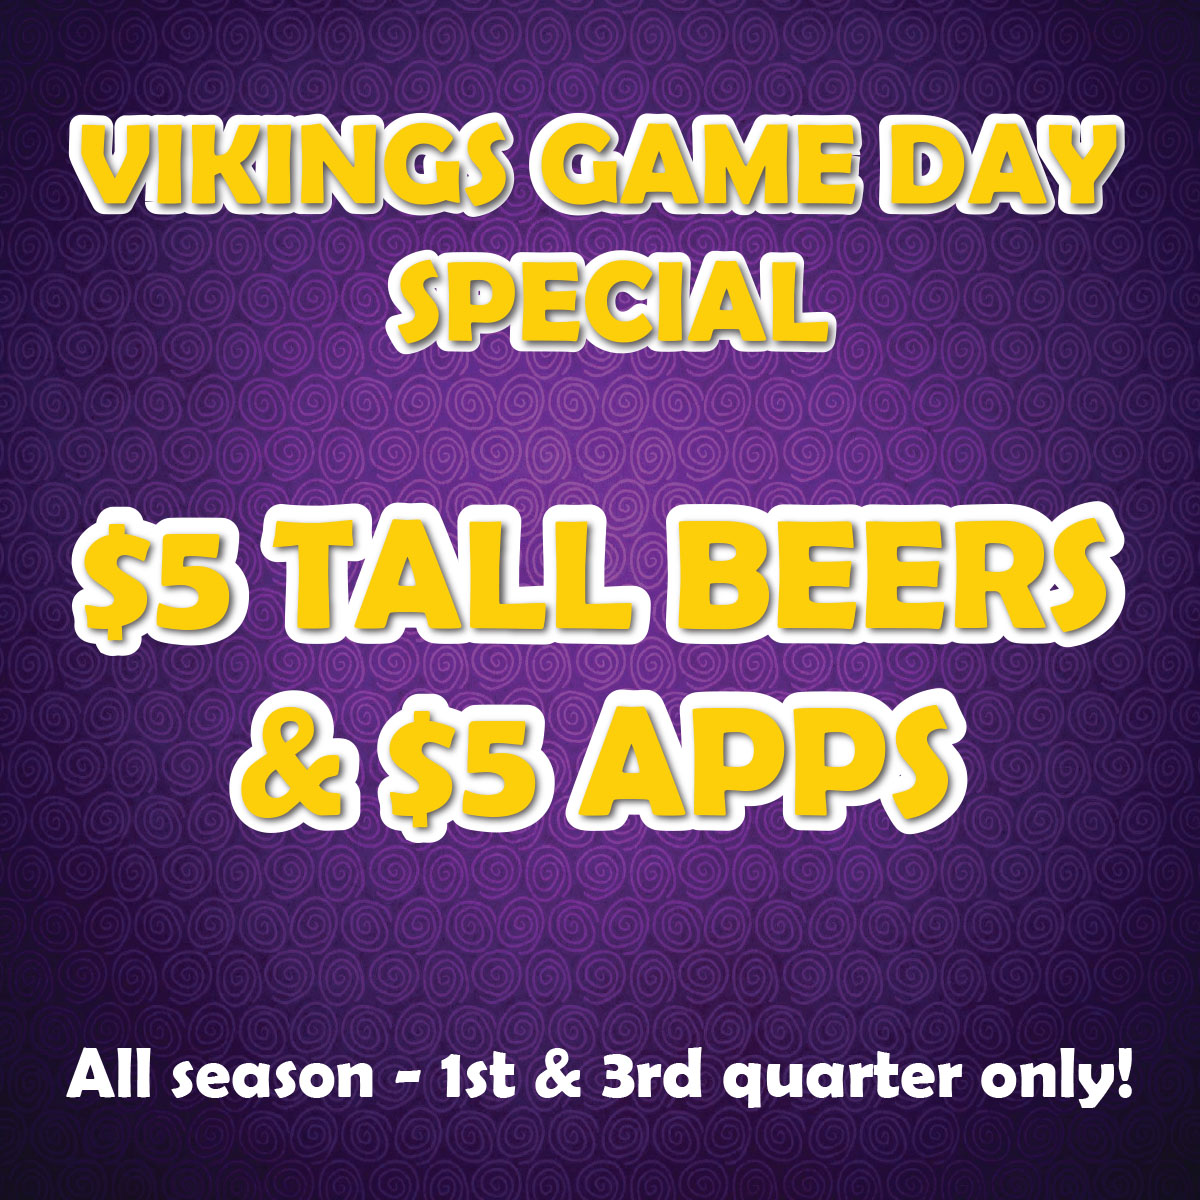 vikings game day special.jpg